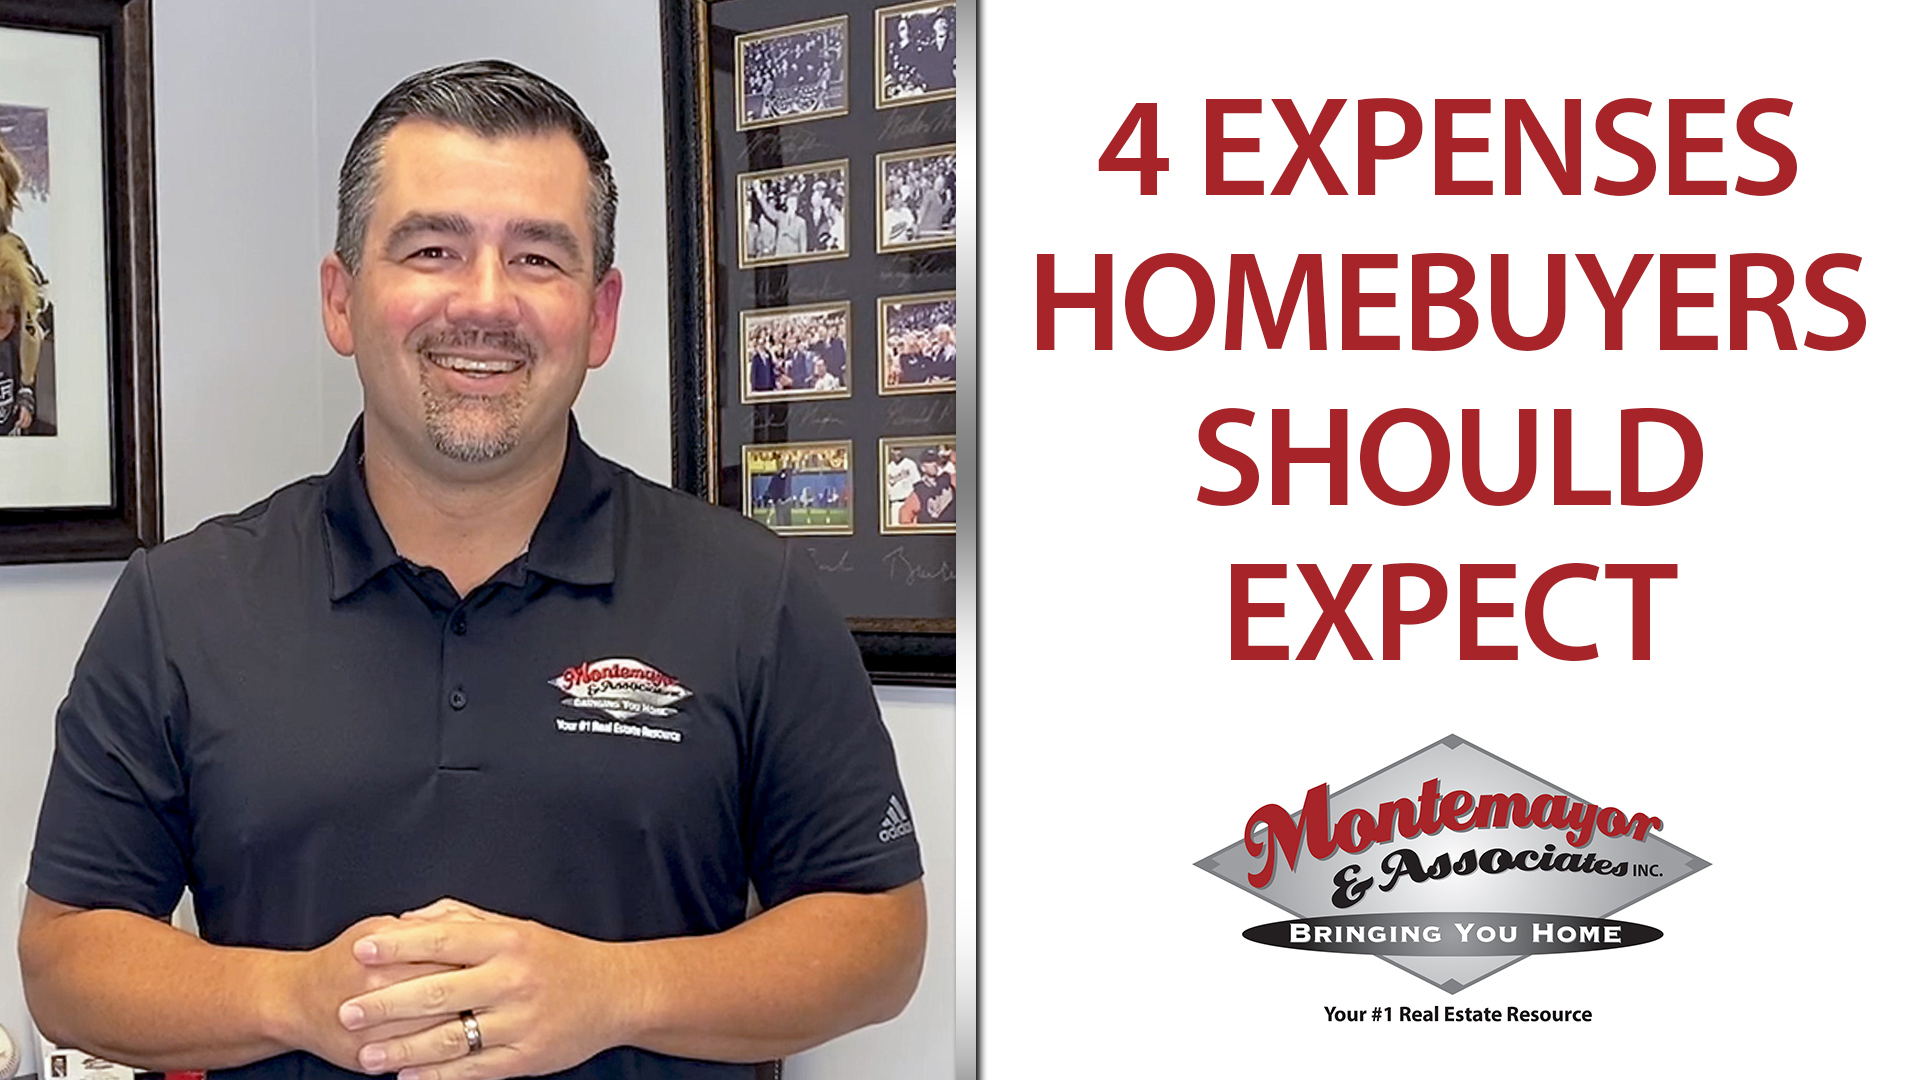 What Expenses Should Buyers Expect?